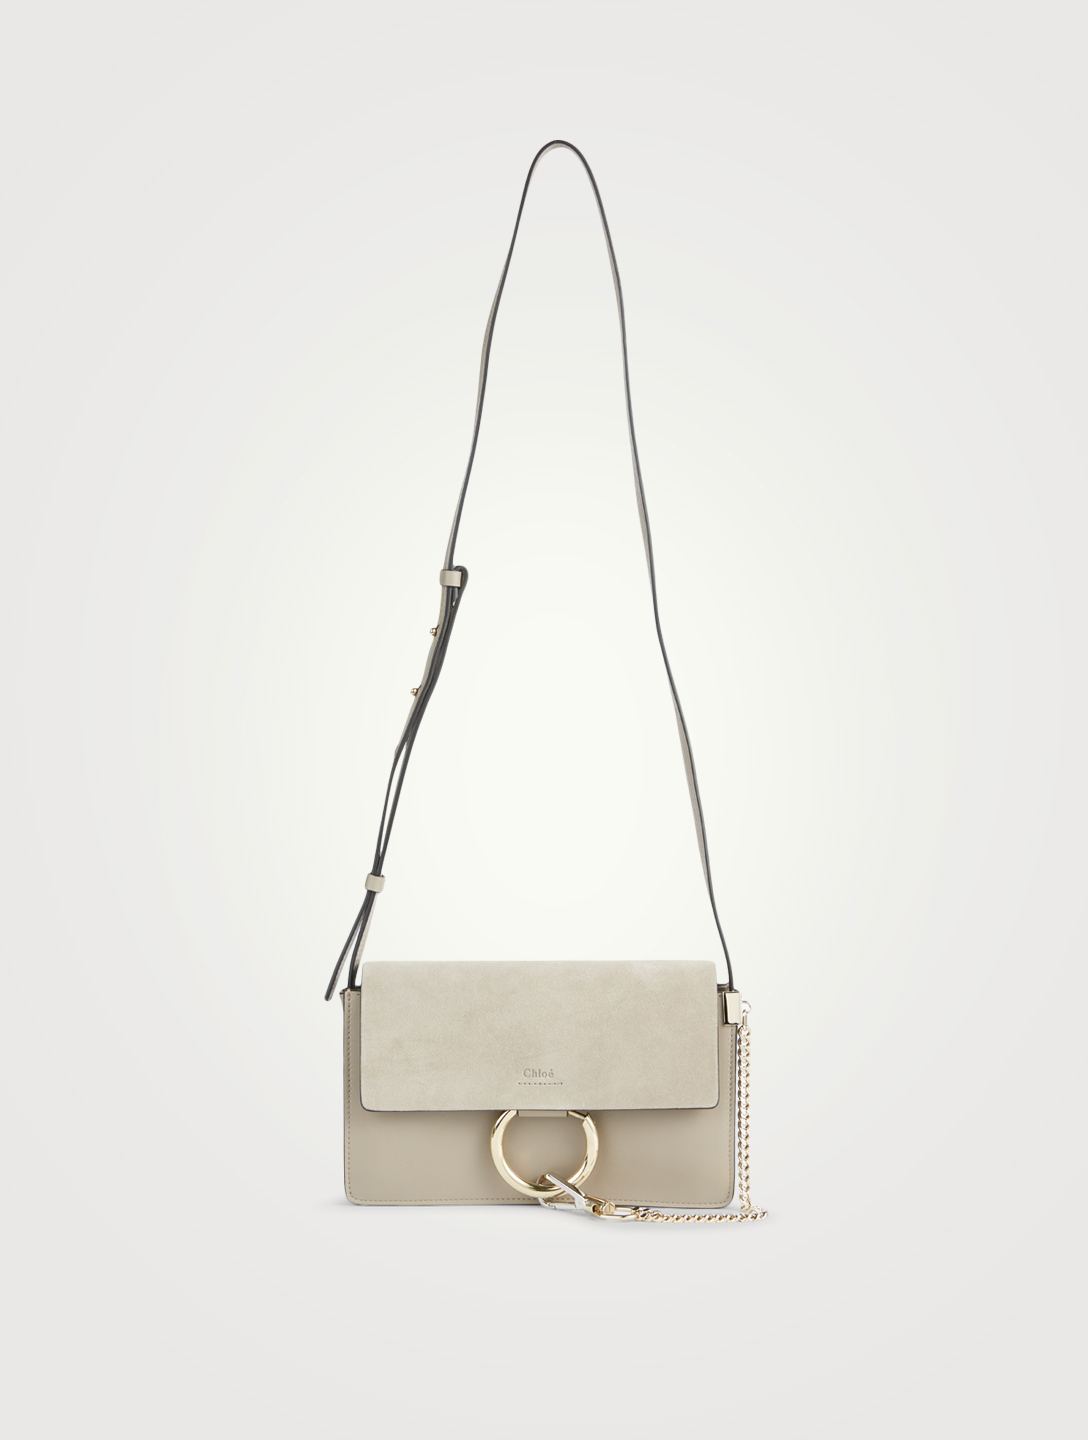 d2ffe29b29 CHLOÉ Small Faye Leather And Suede Crossbody Bag | Holt Renfrew